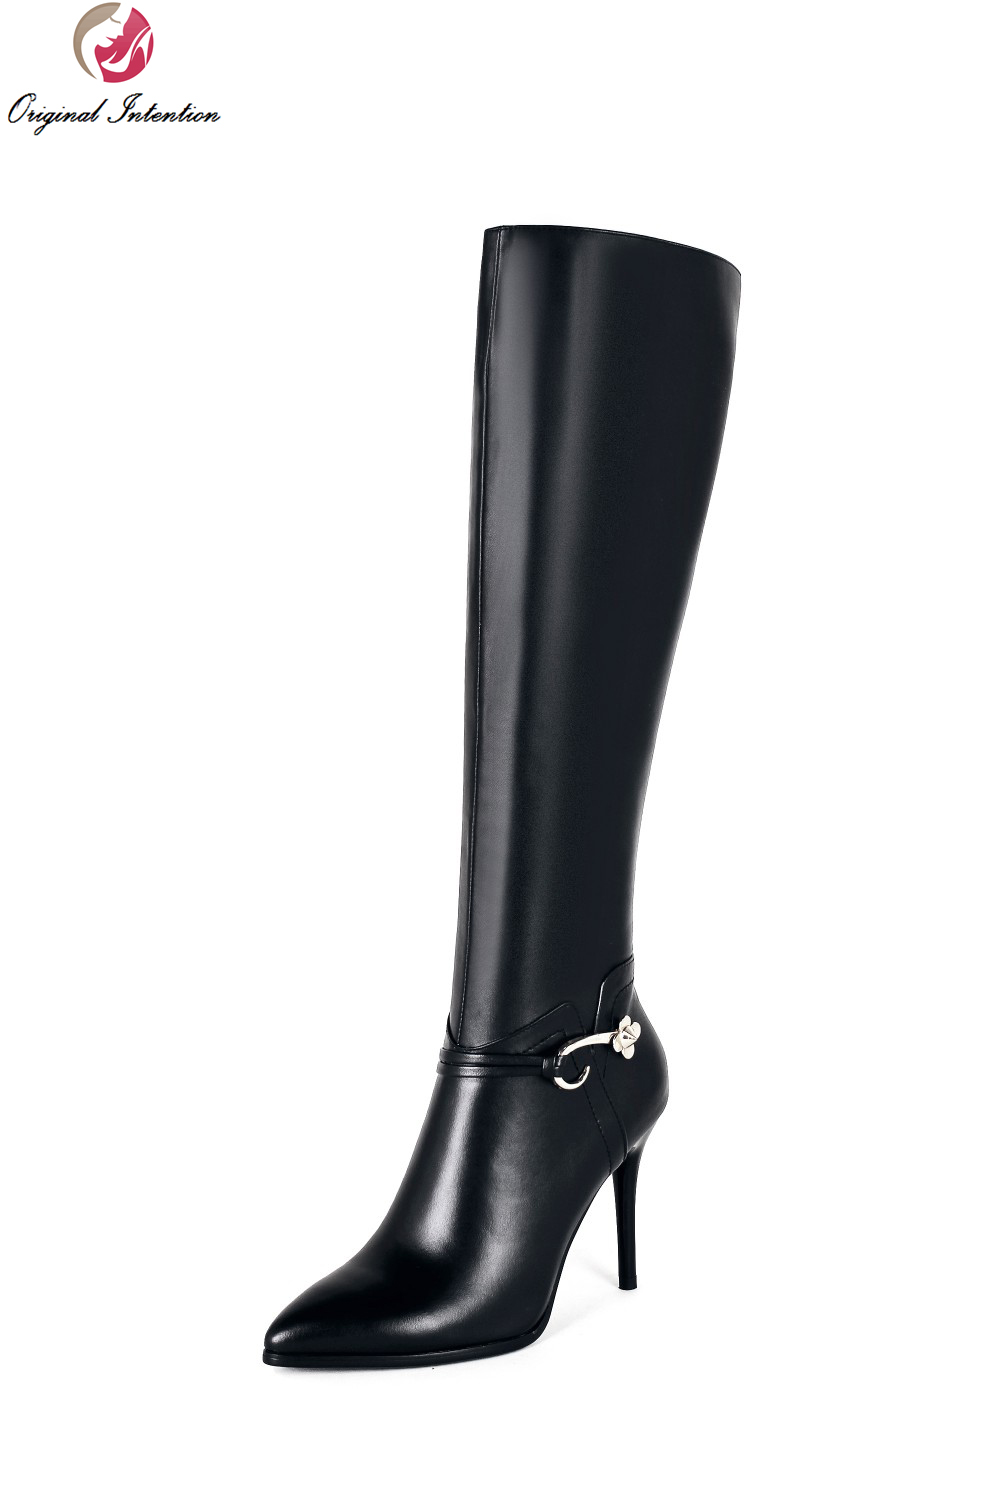 Original Intention Elegant Women Knee High Boots Nice Pointed Toe Thin Heels Boots Beautiful Black Shoes Woman US Size 3-10.5 original intention nice fashion women knee high boots round toe square heels boots beautiful black shoes woman us size 3 5 13